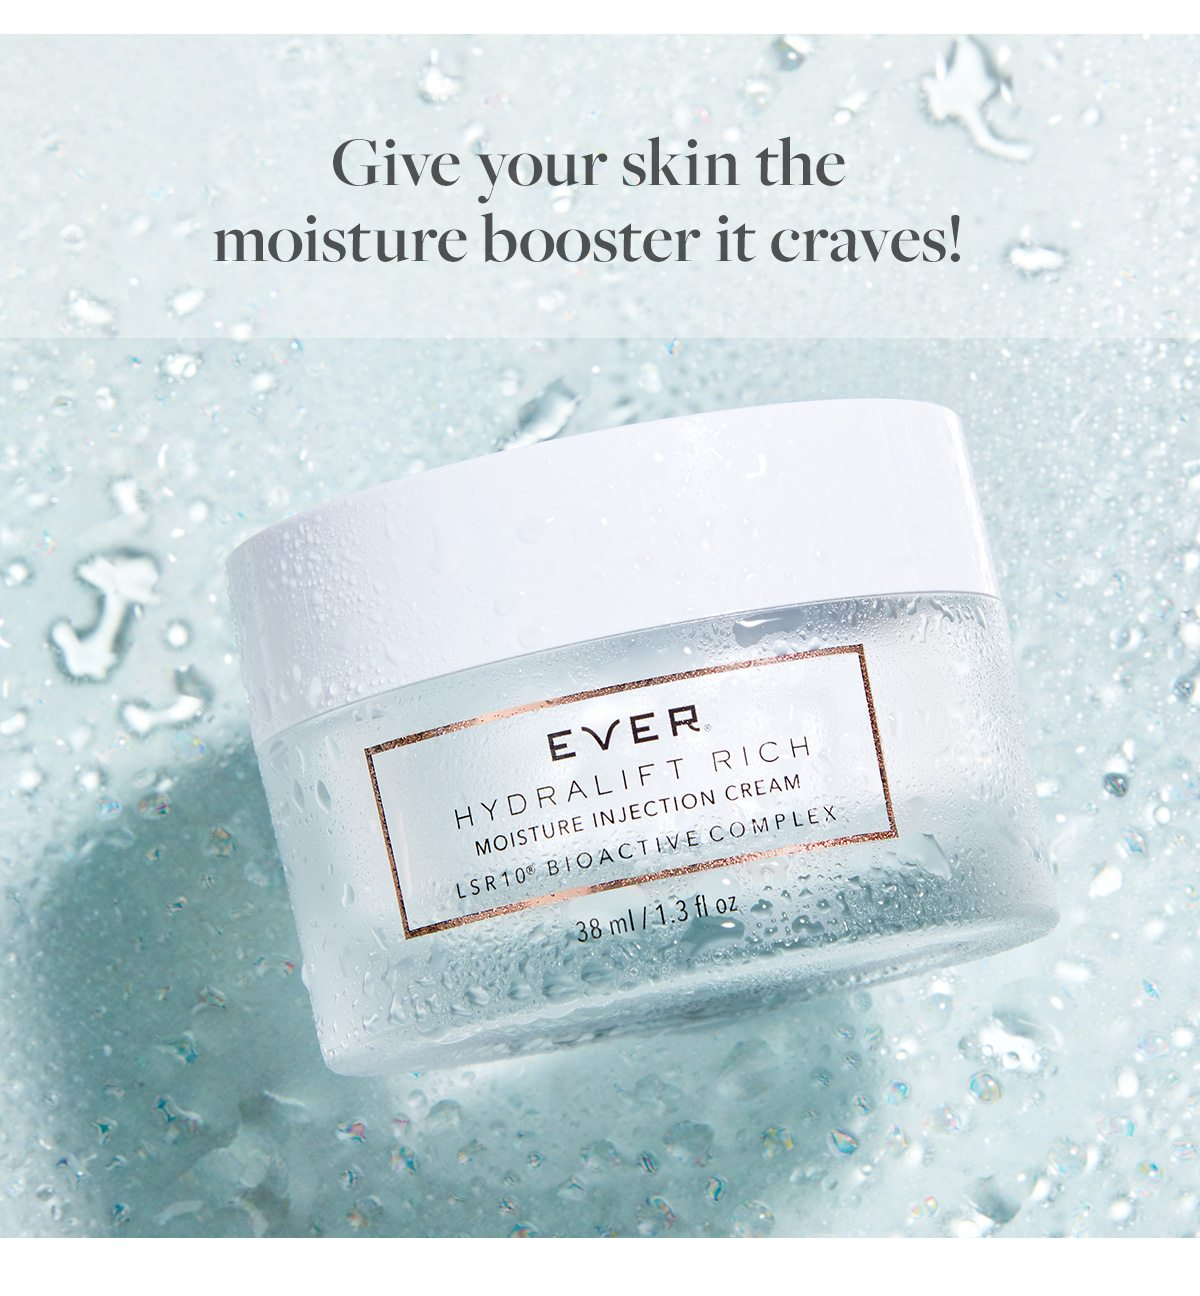 Give your skin the moisture booster it craves!